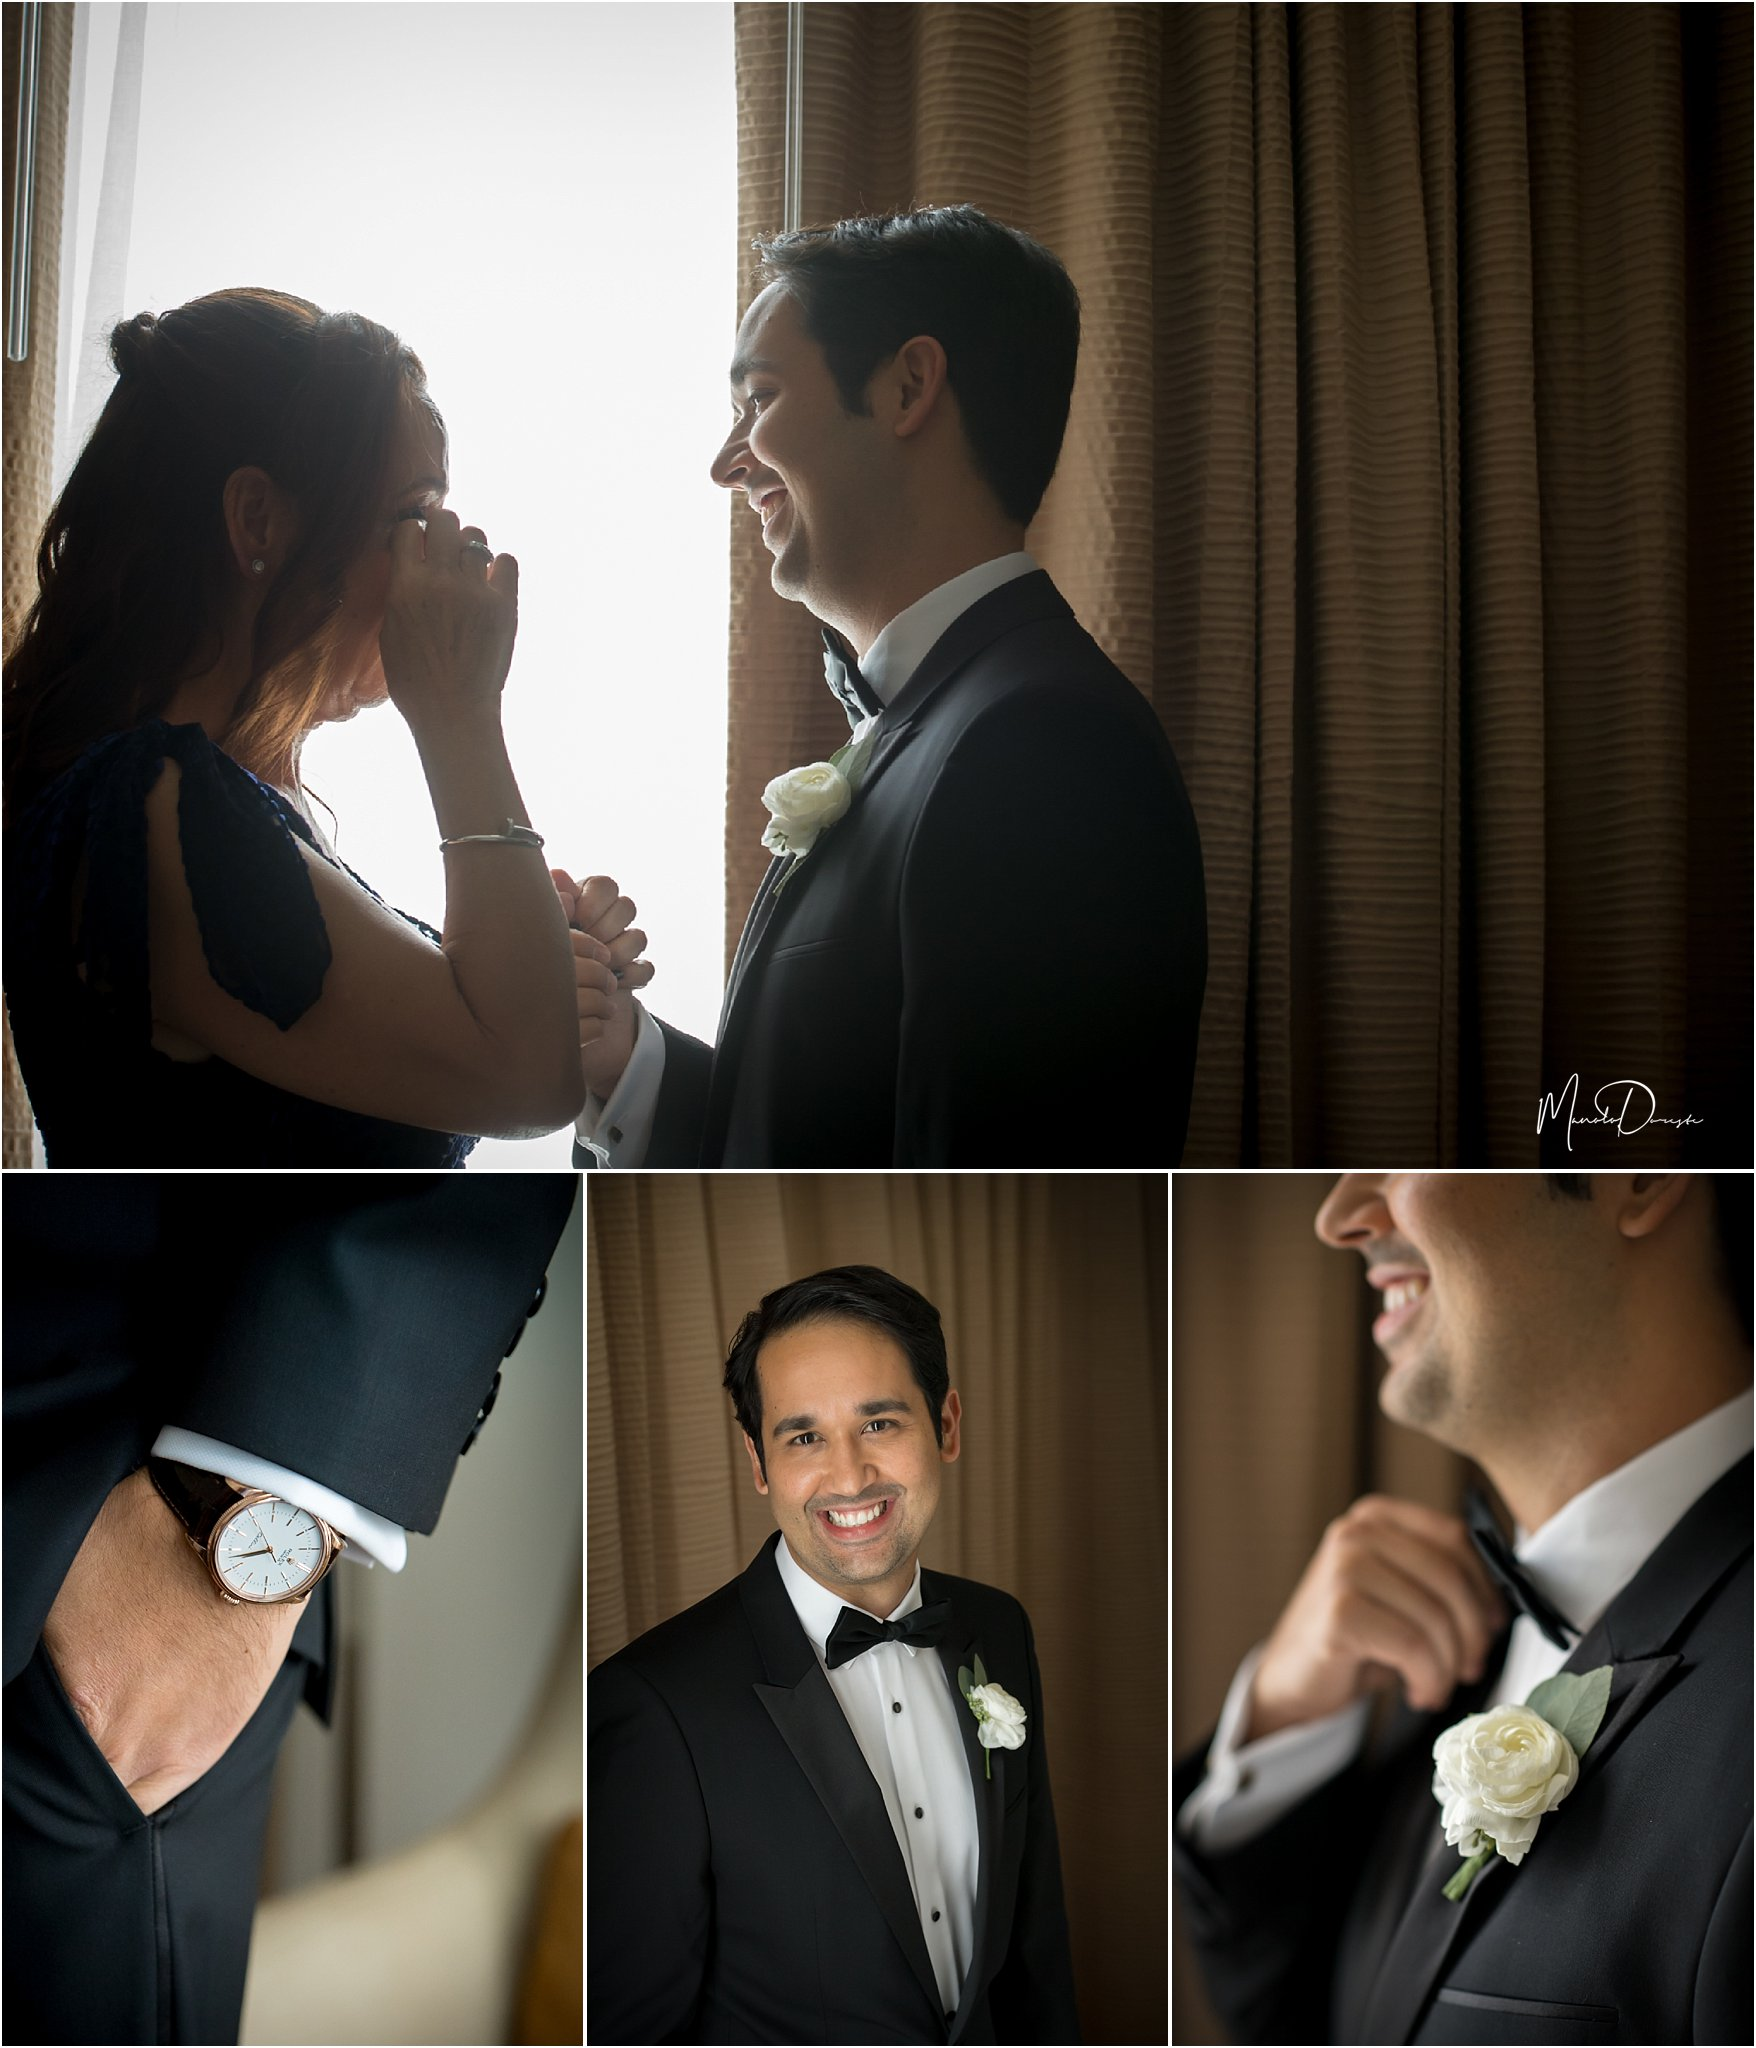 0086_ManoloDoreste_InFocusStudios_Wedding_Family_Photography_Miami_MiamiPhotographer.jpg